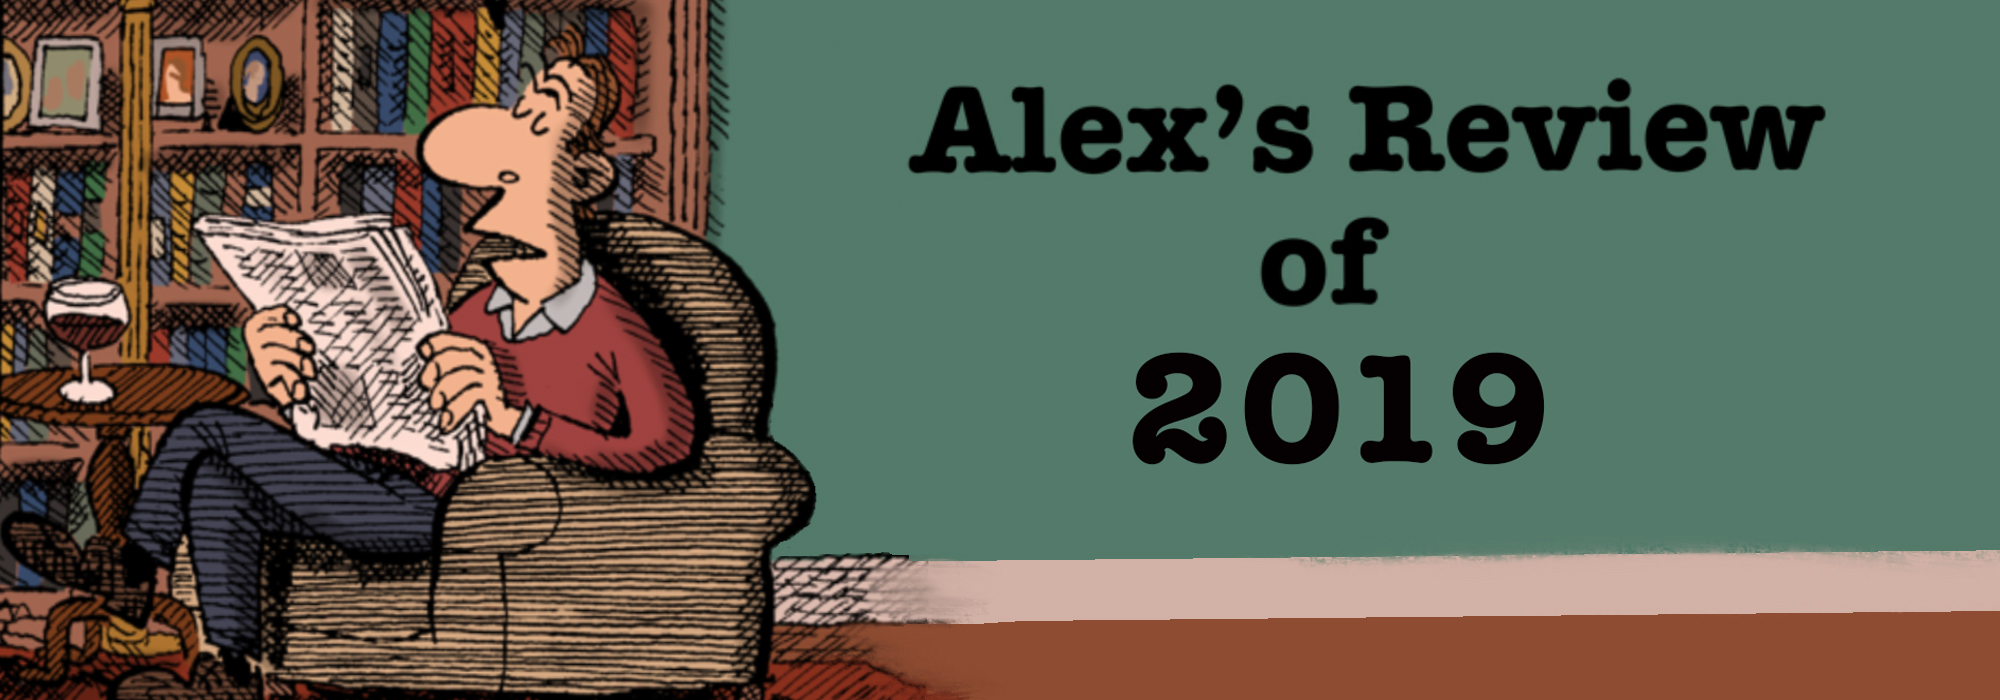 Alex's Review of 2019